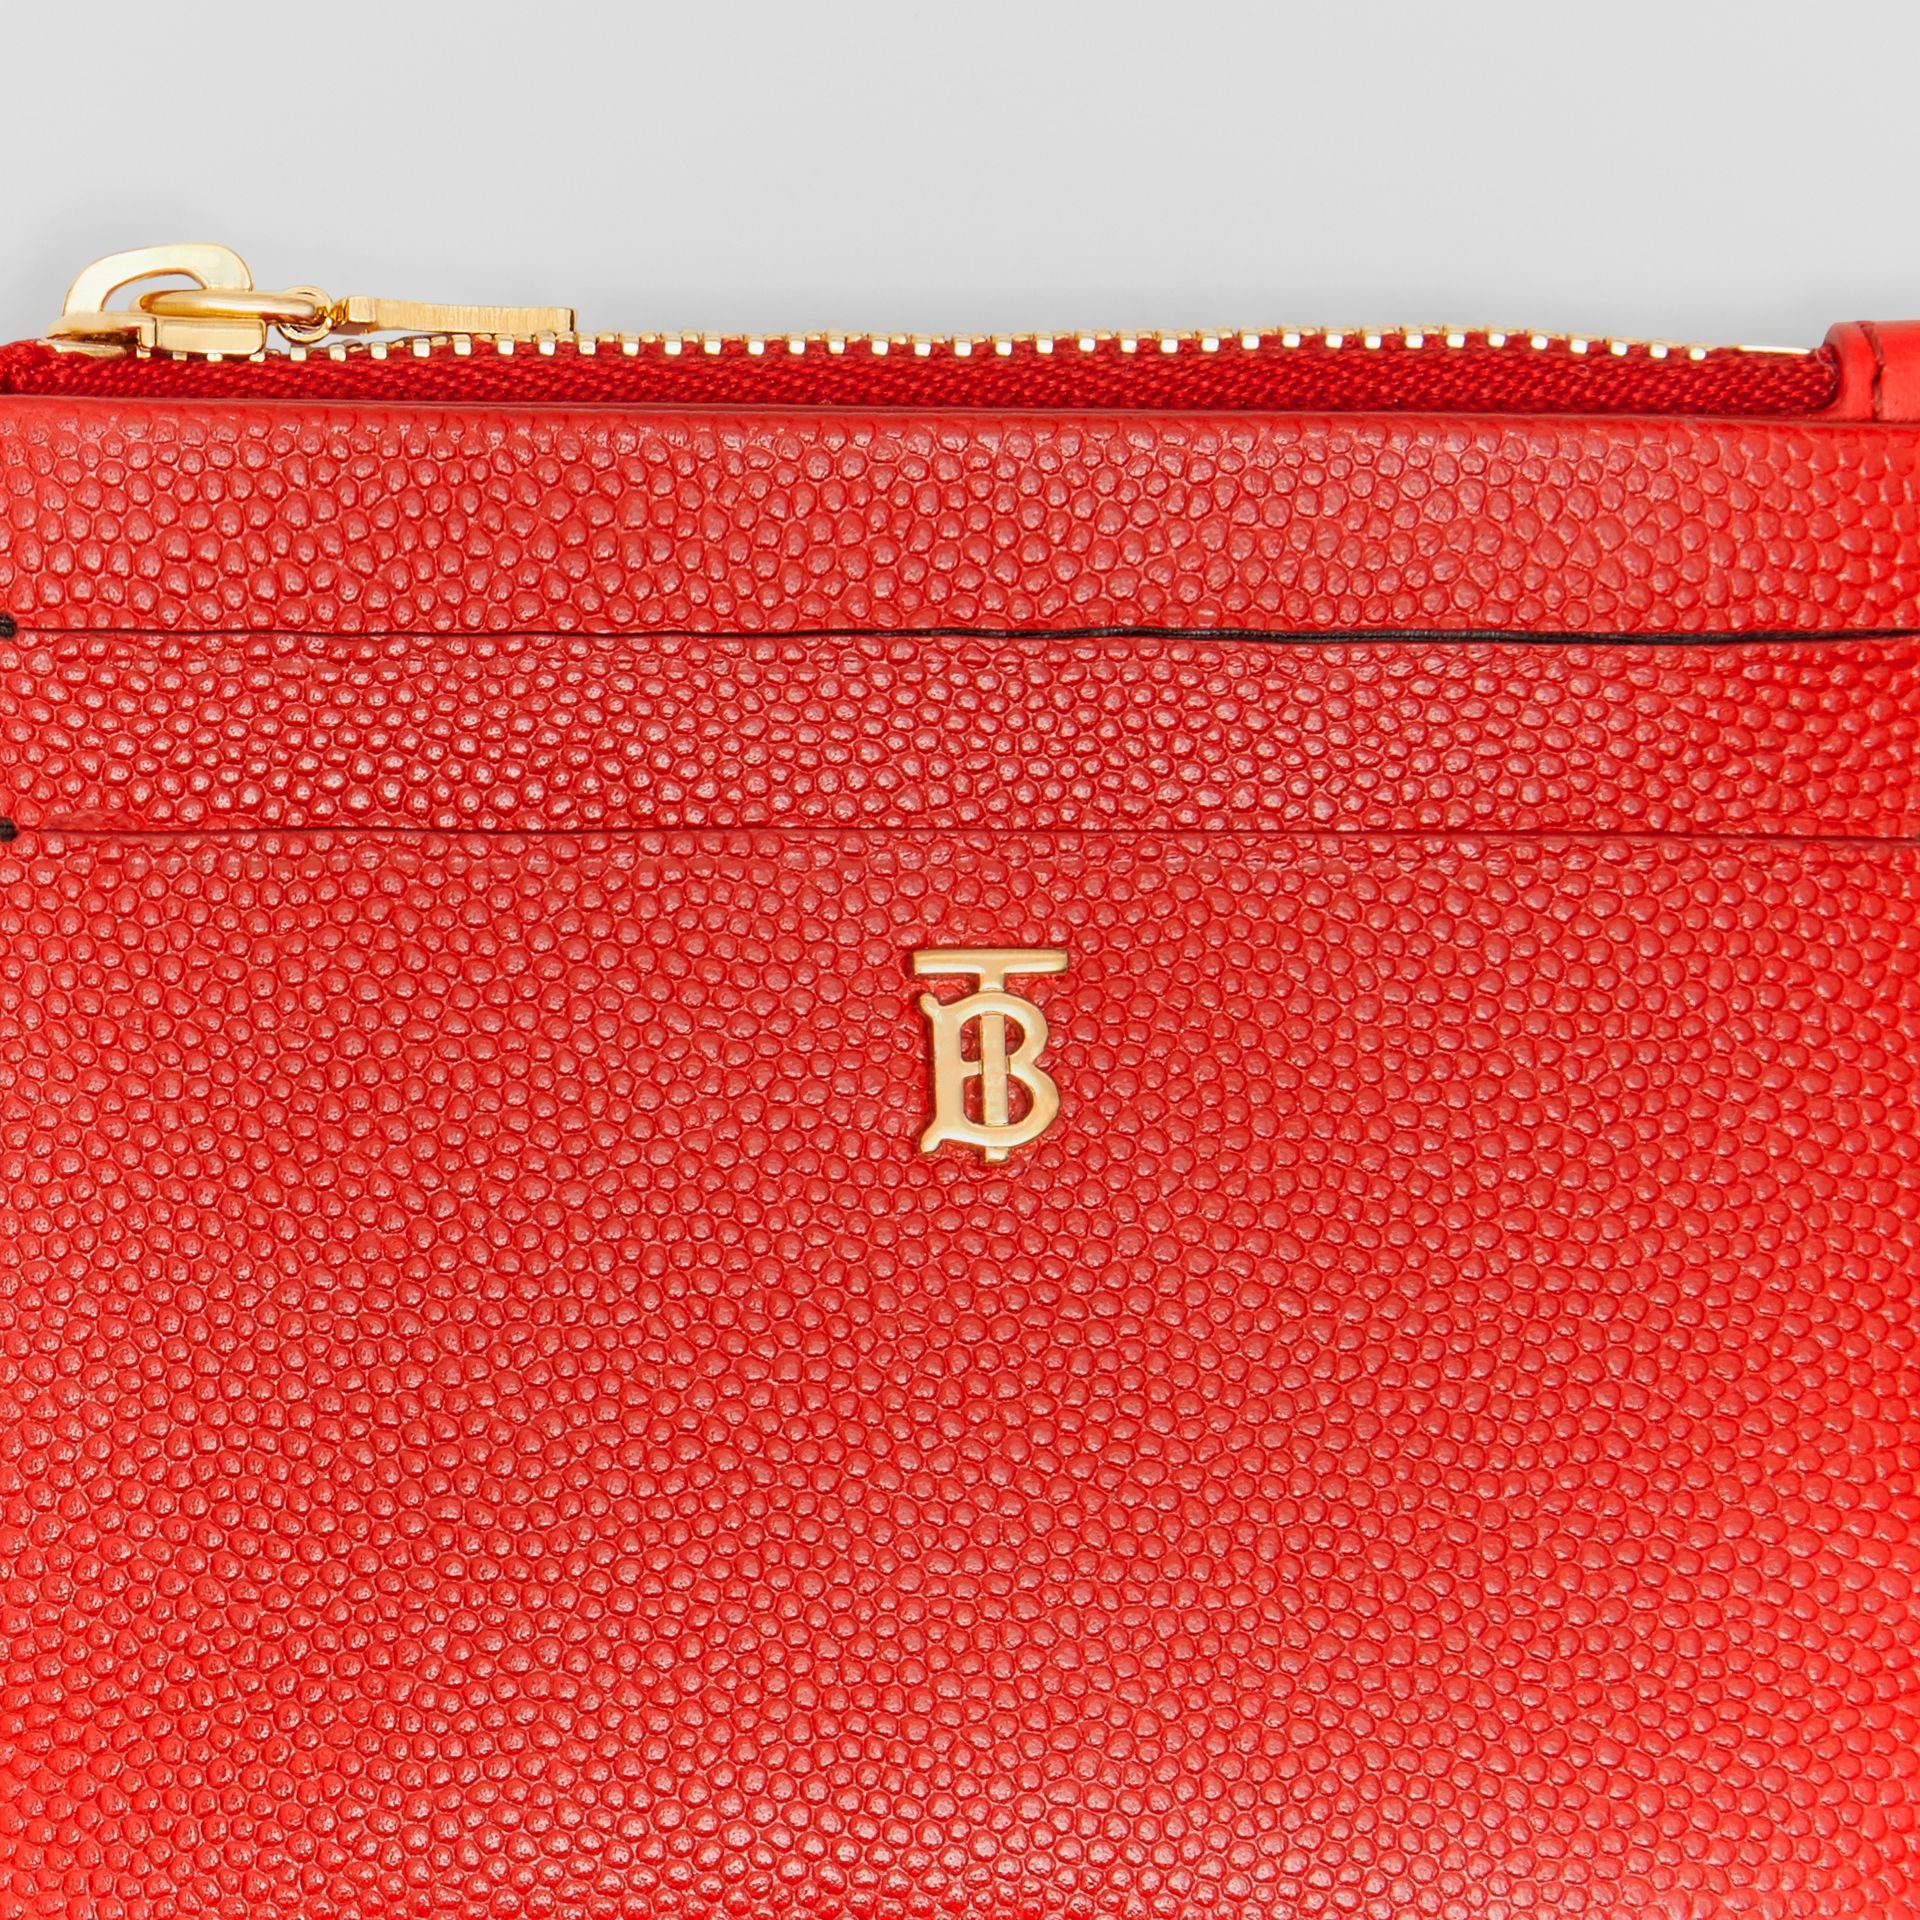 Monogram Motif Grainy Leather Zip Card Case in Bright Red - Women | Burberry - gallery image 1